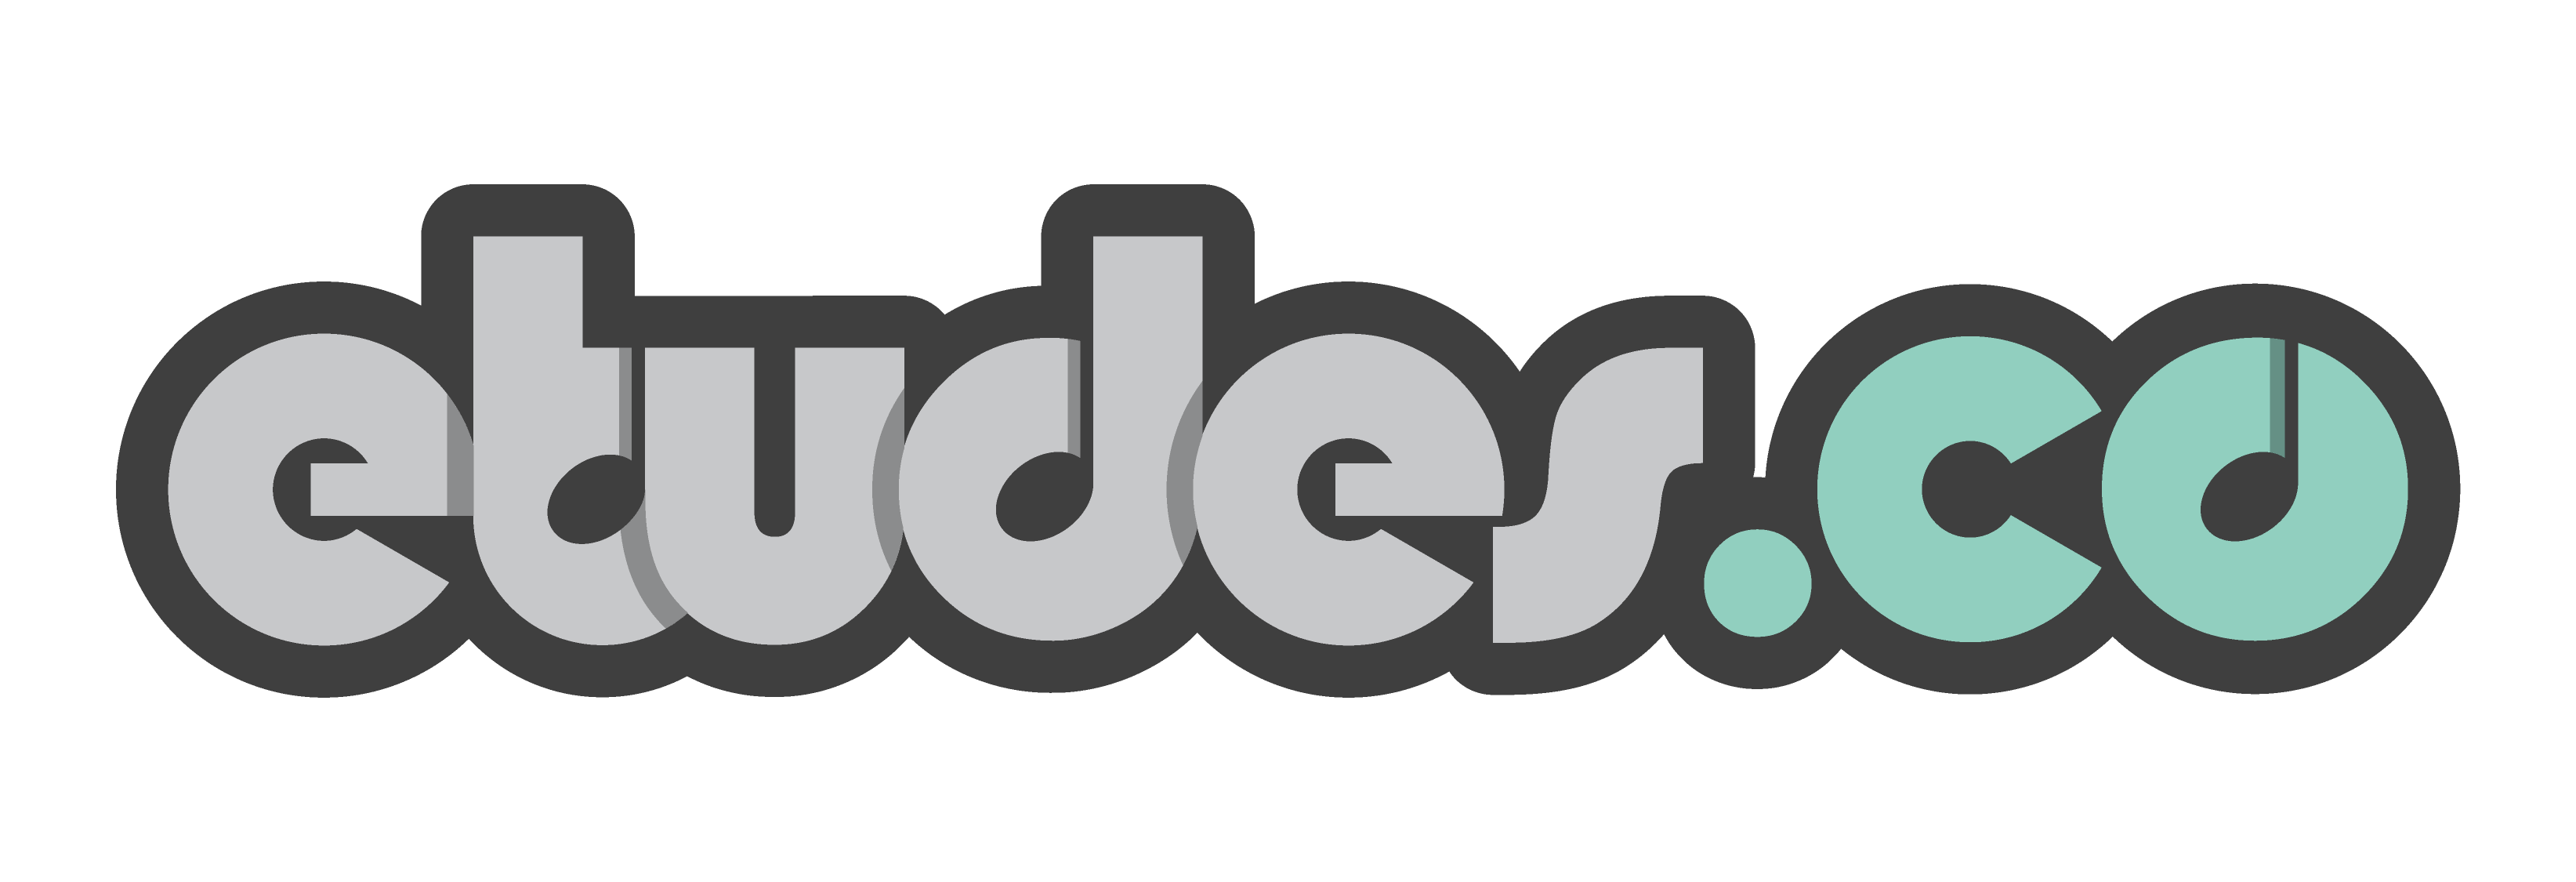 Etudes.co - Music Ed. Connected.